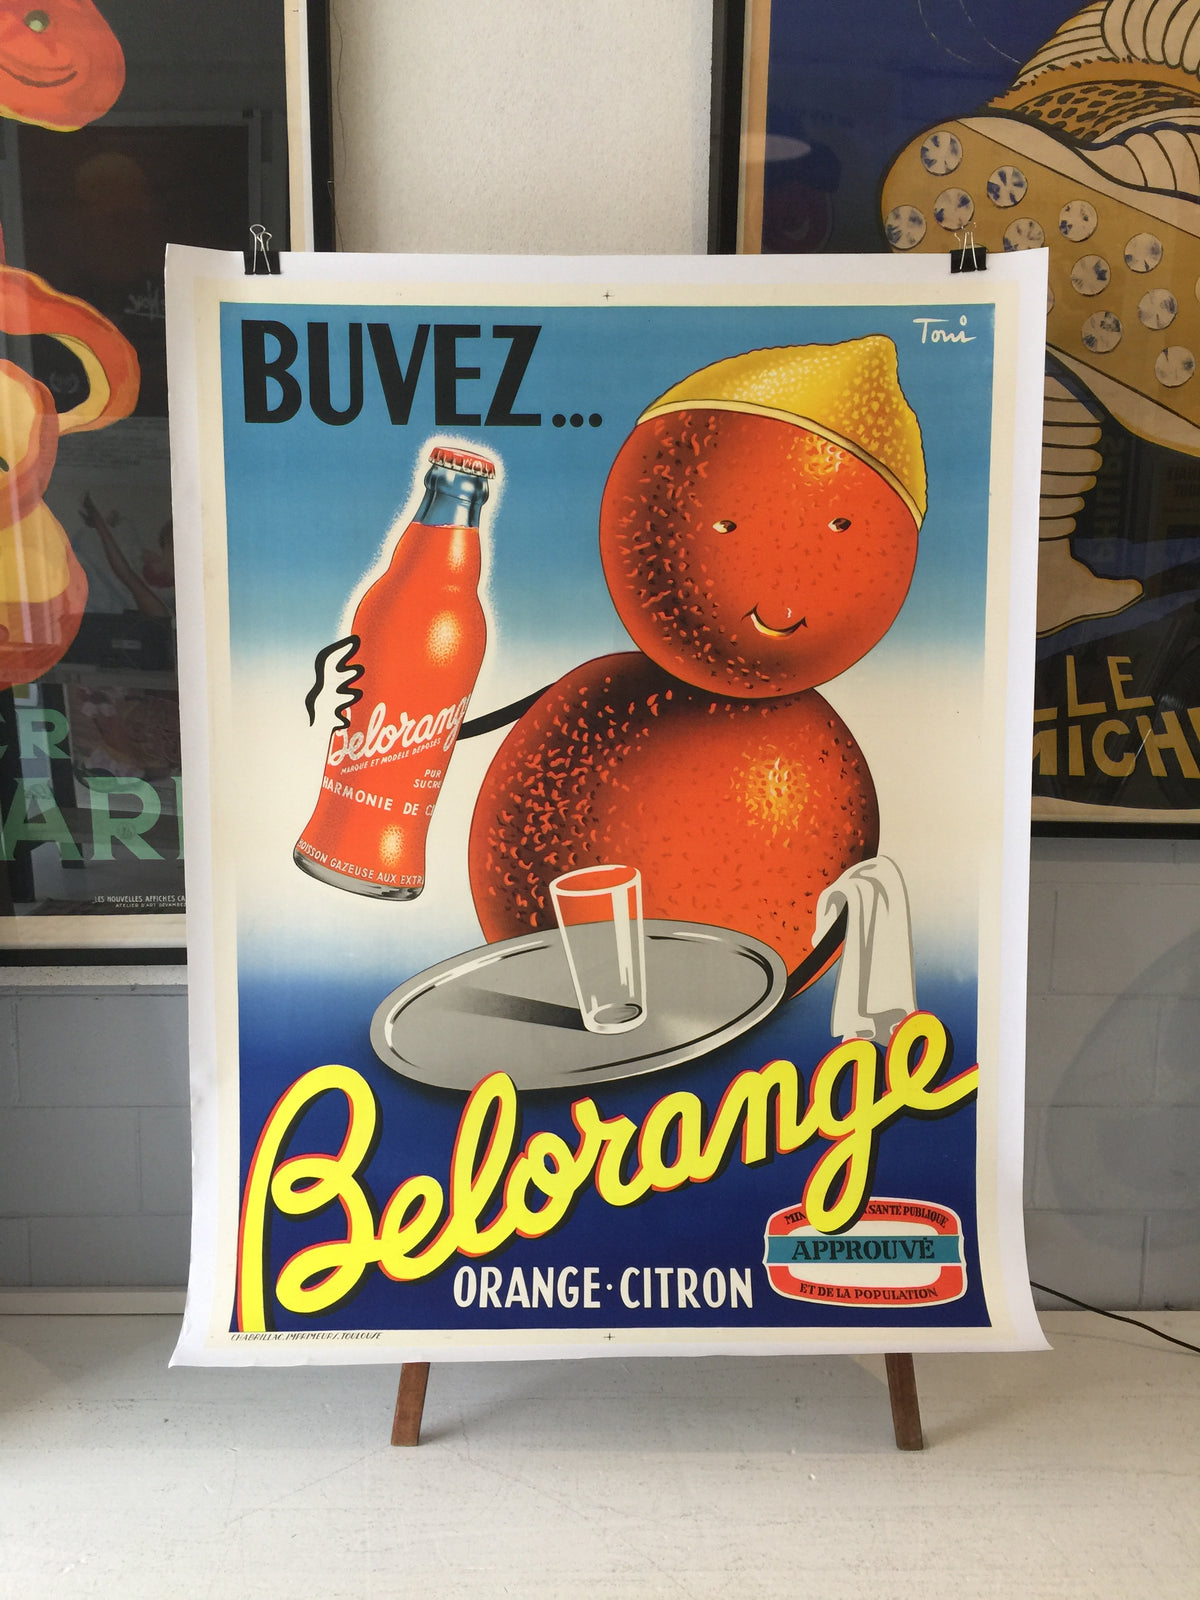 Buvez Belorange by Toni